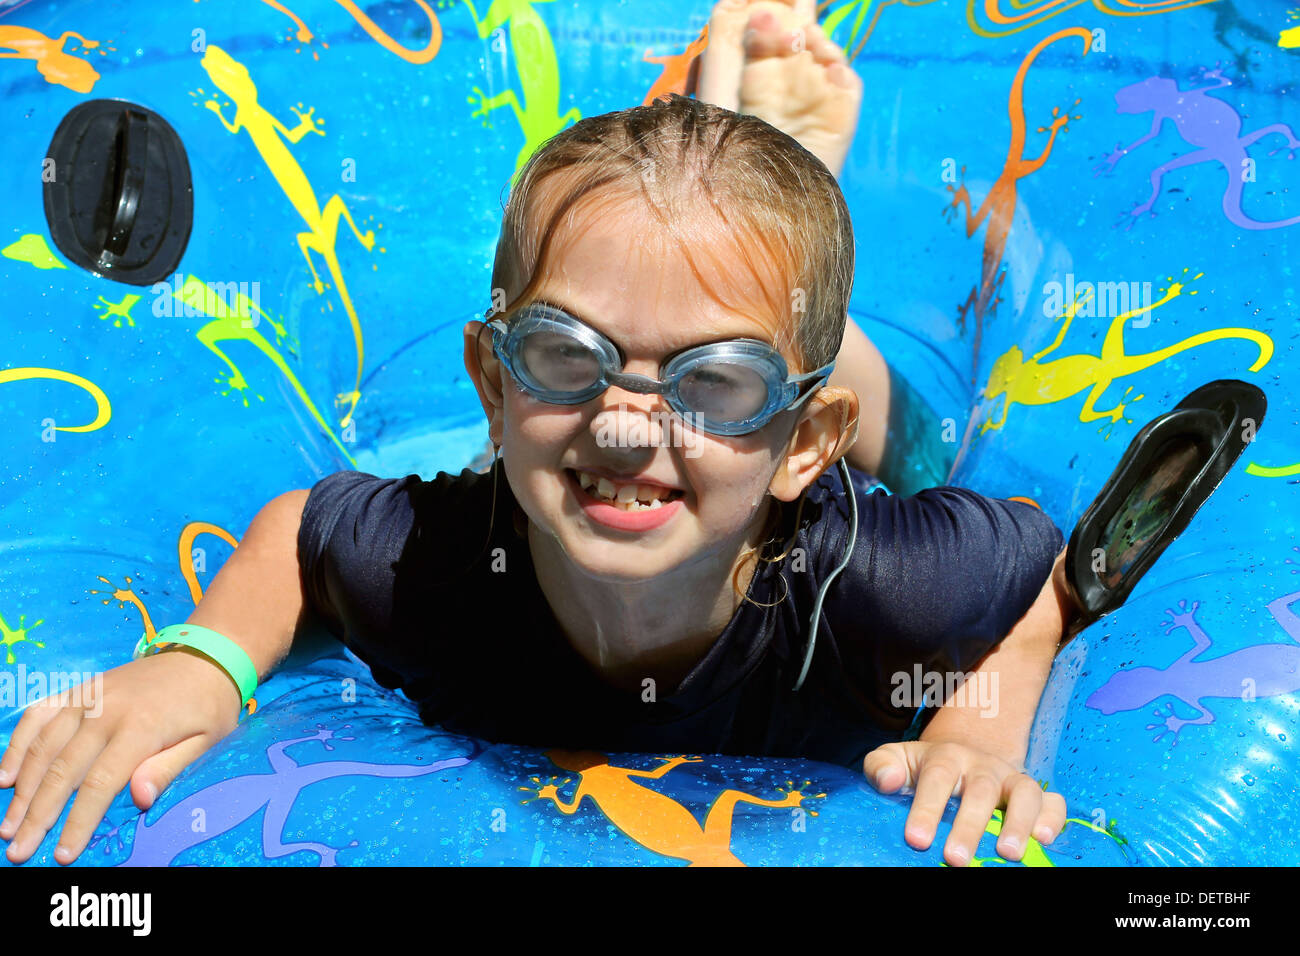 Cute girl playing on inflatable in swimming pool. - Stock Image